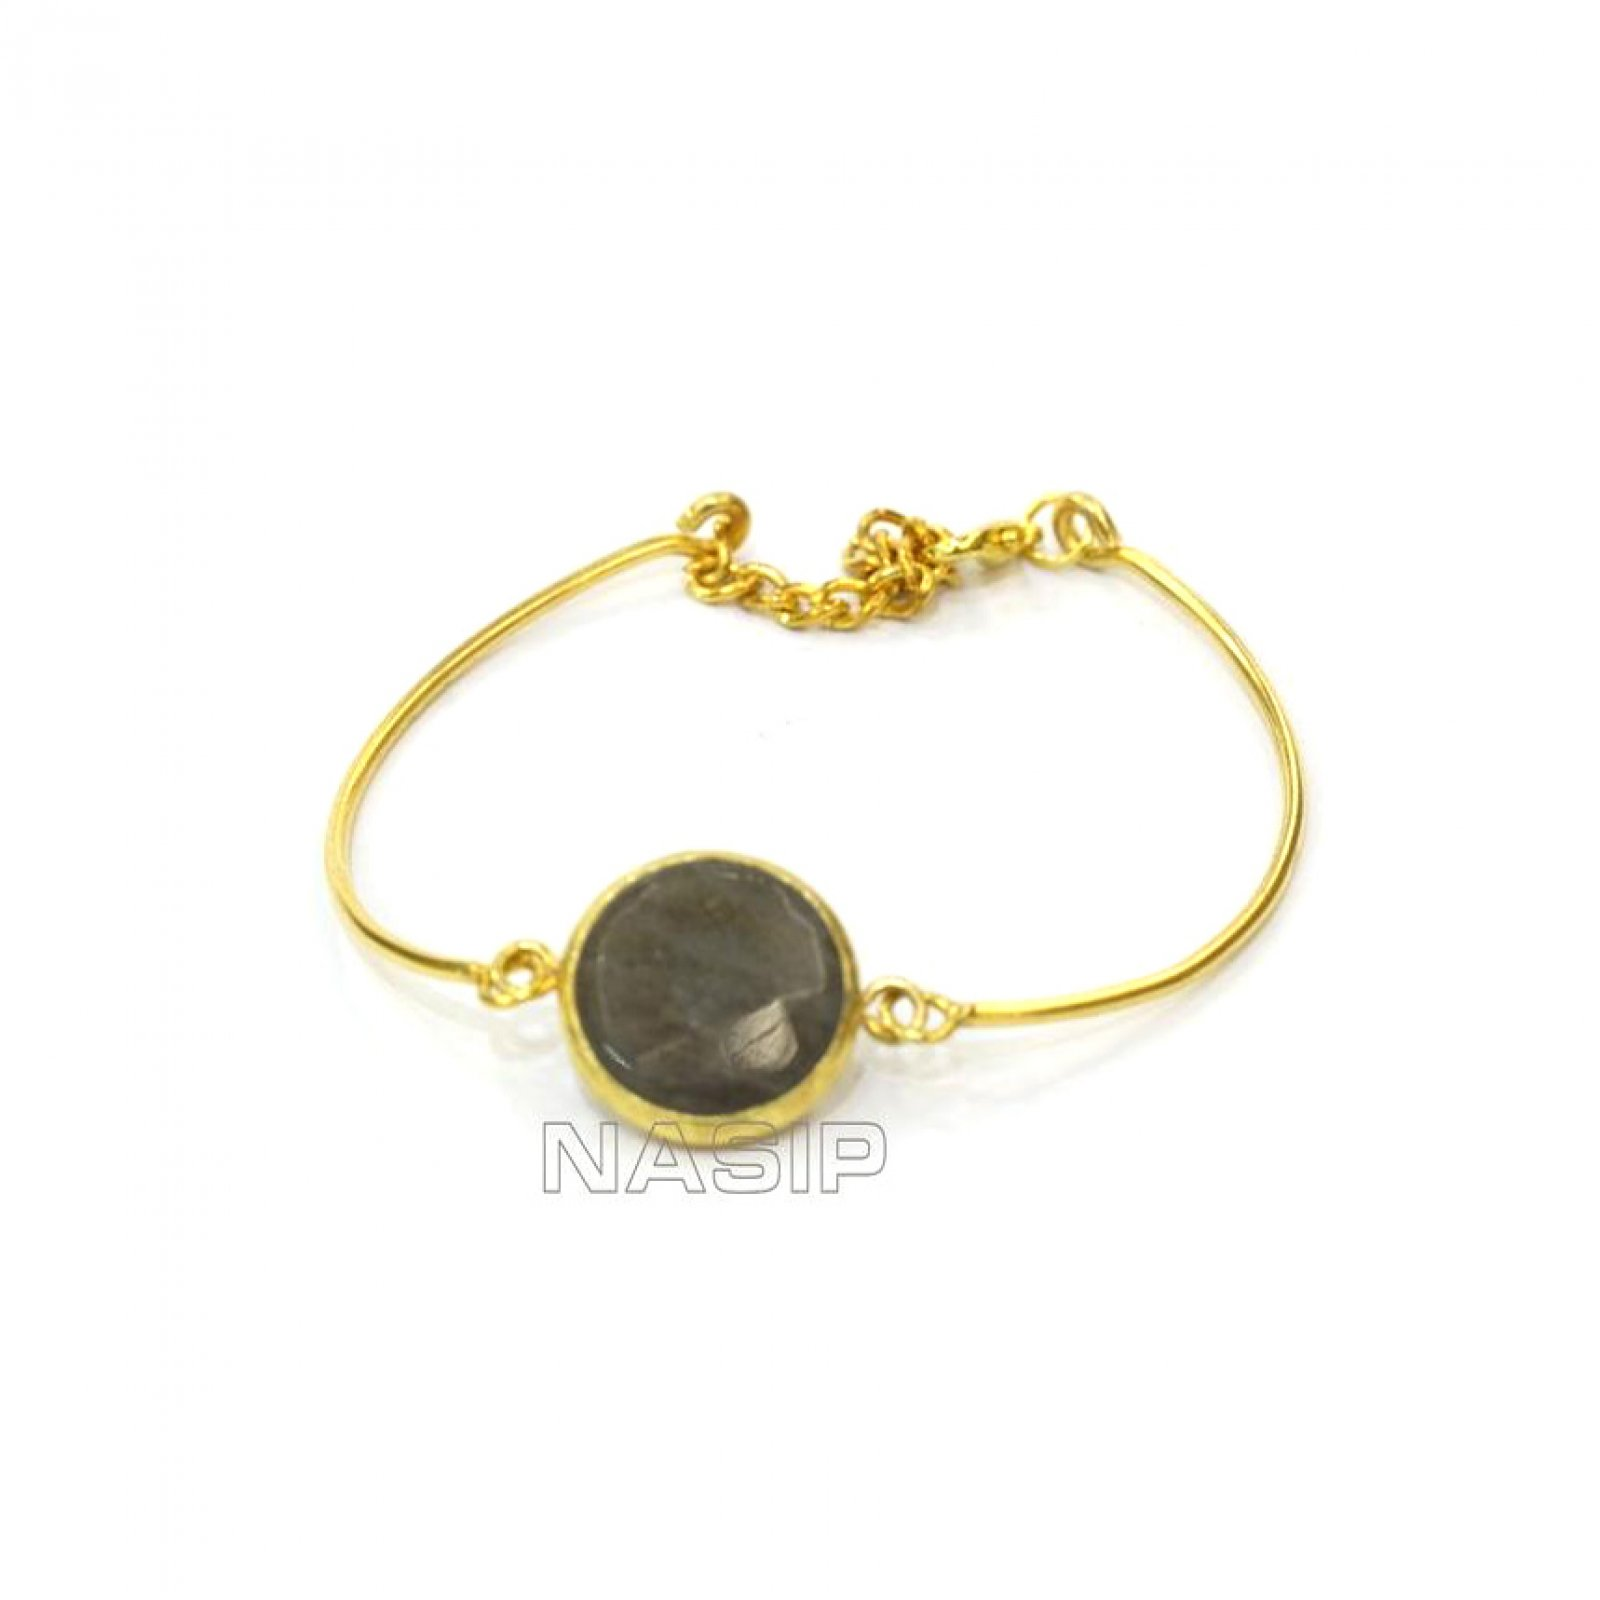 GB550 - GOLD PLATED HANDMADE BRACELET